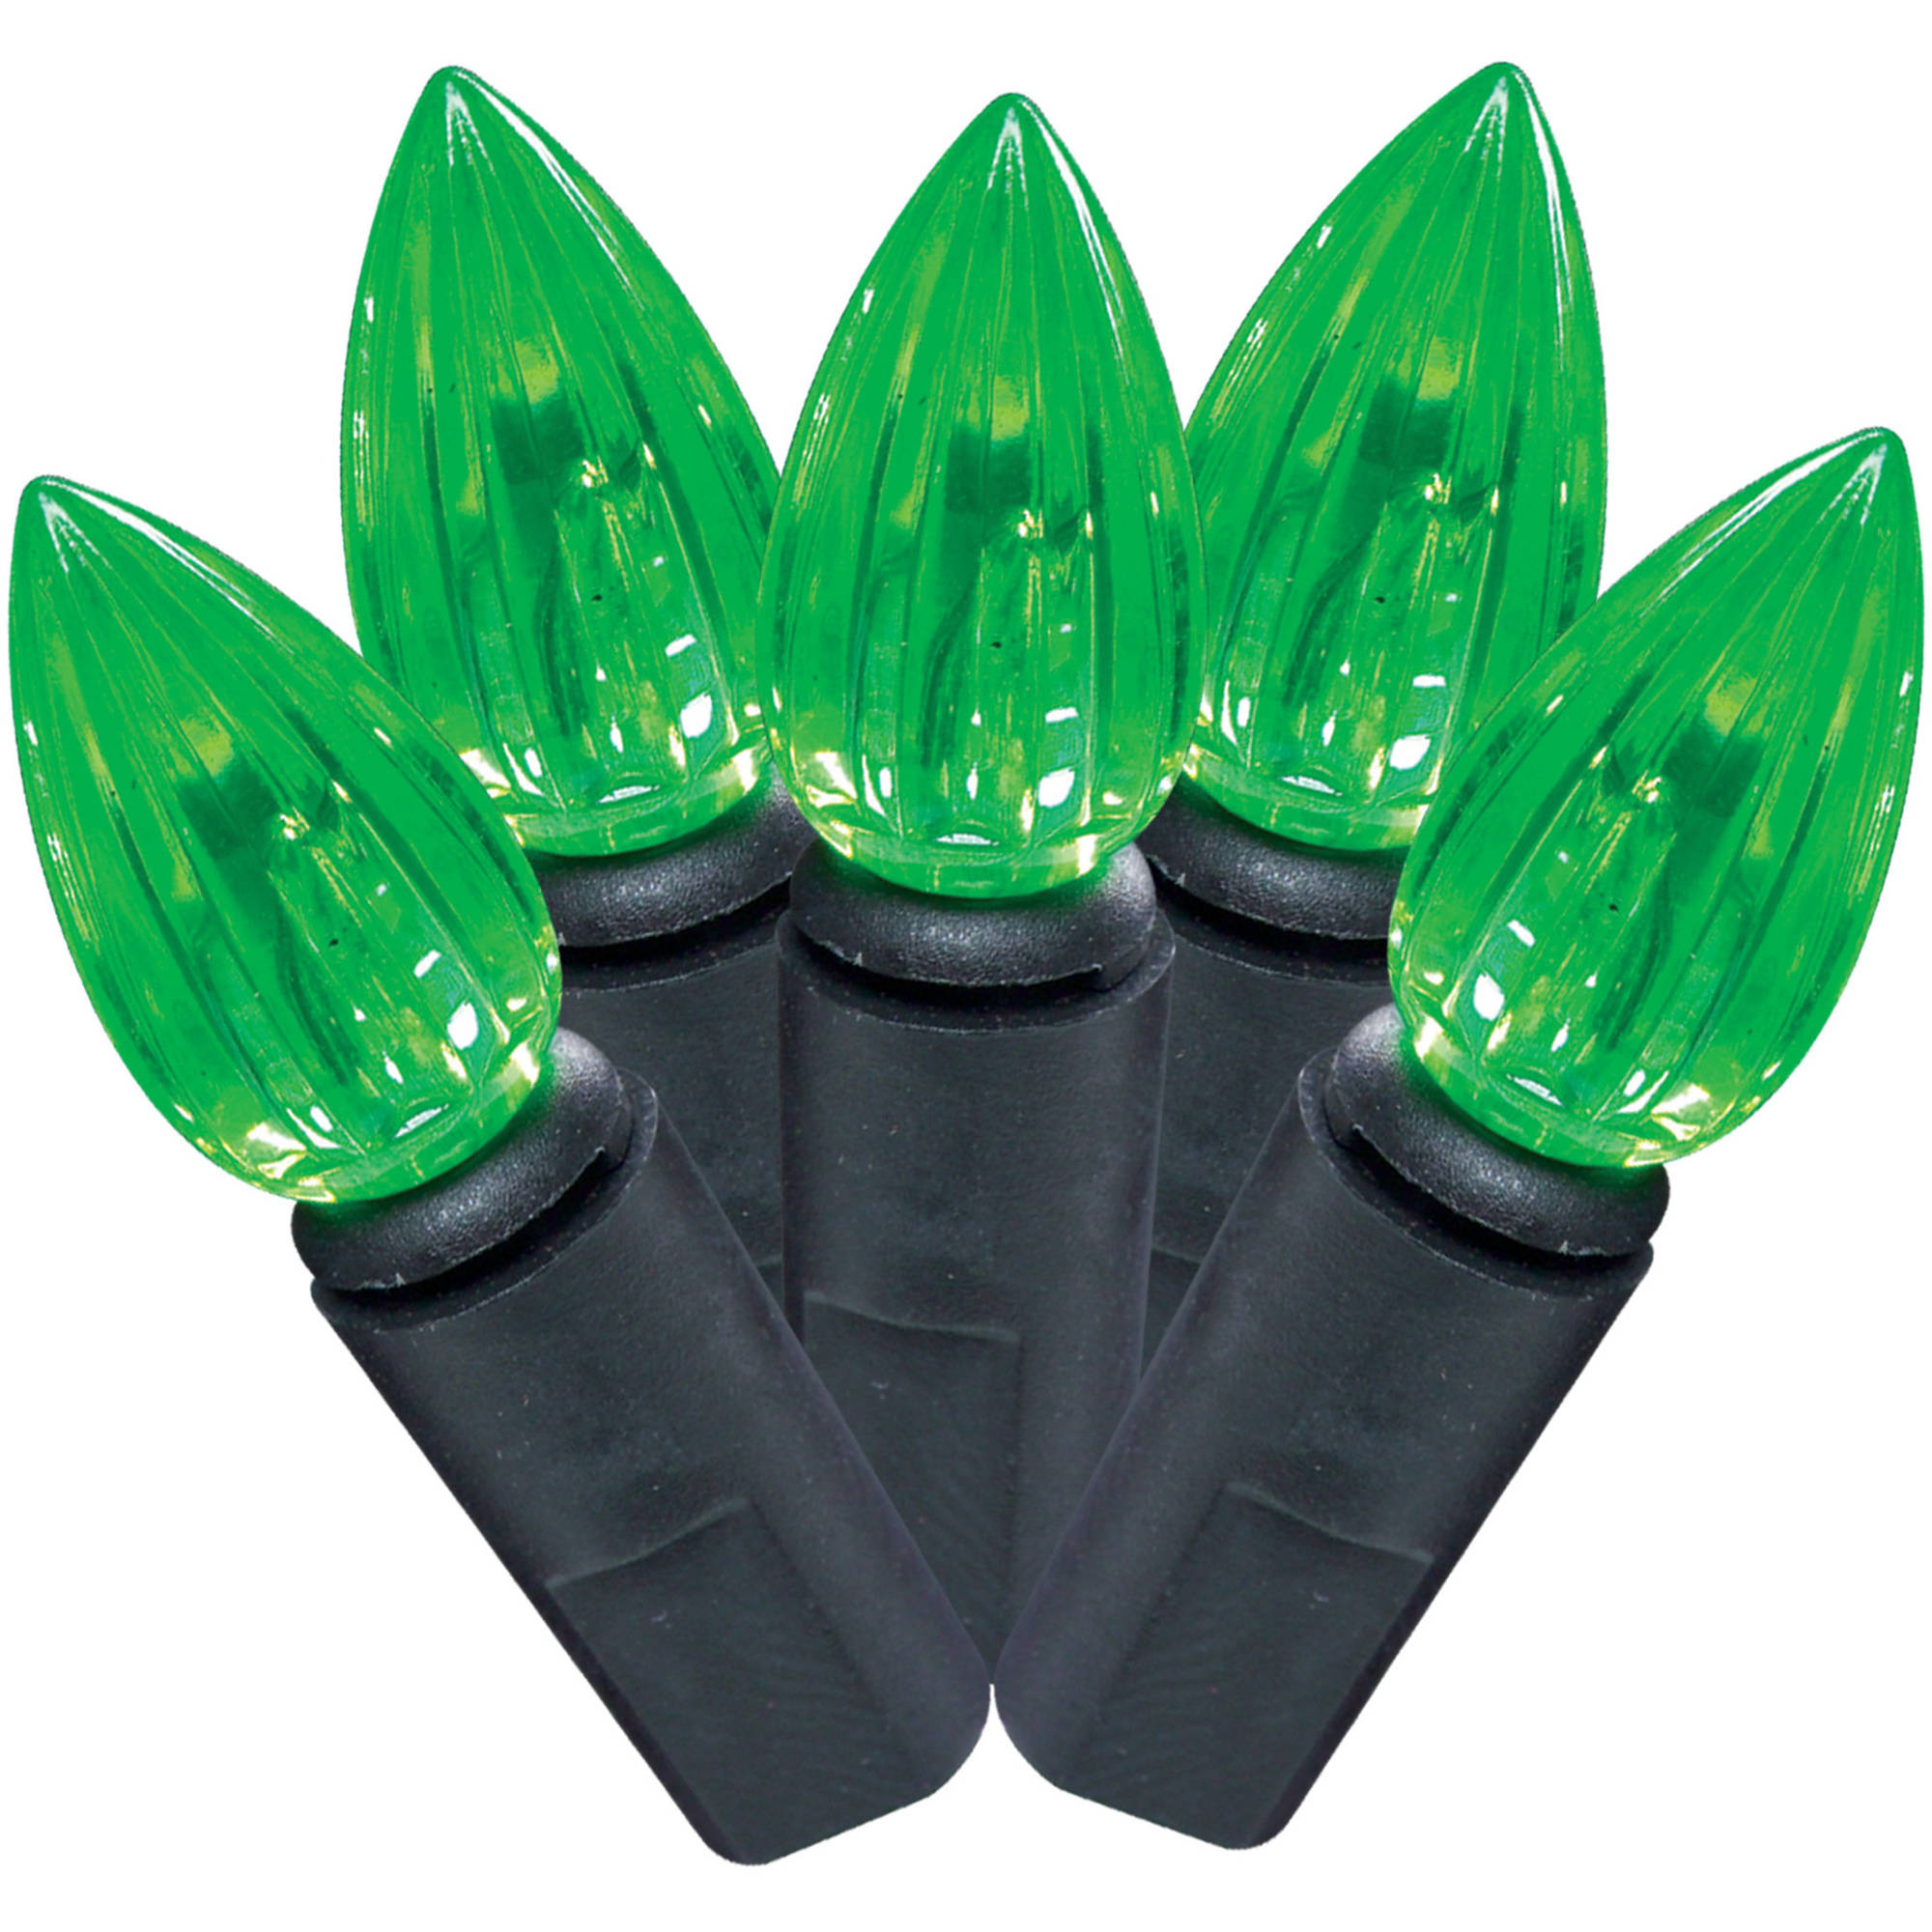 Halloween LED Vertical Cut C3 Lights, Green, 50pk